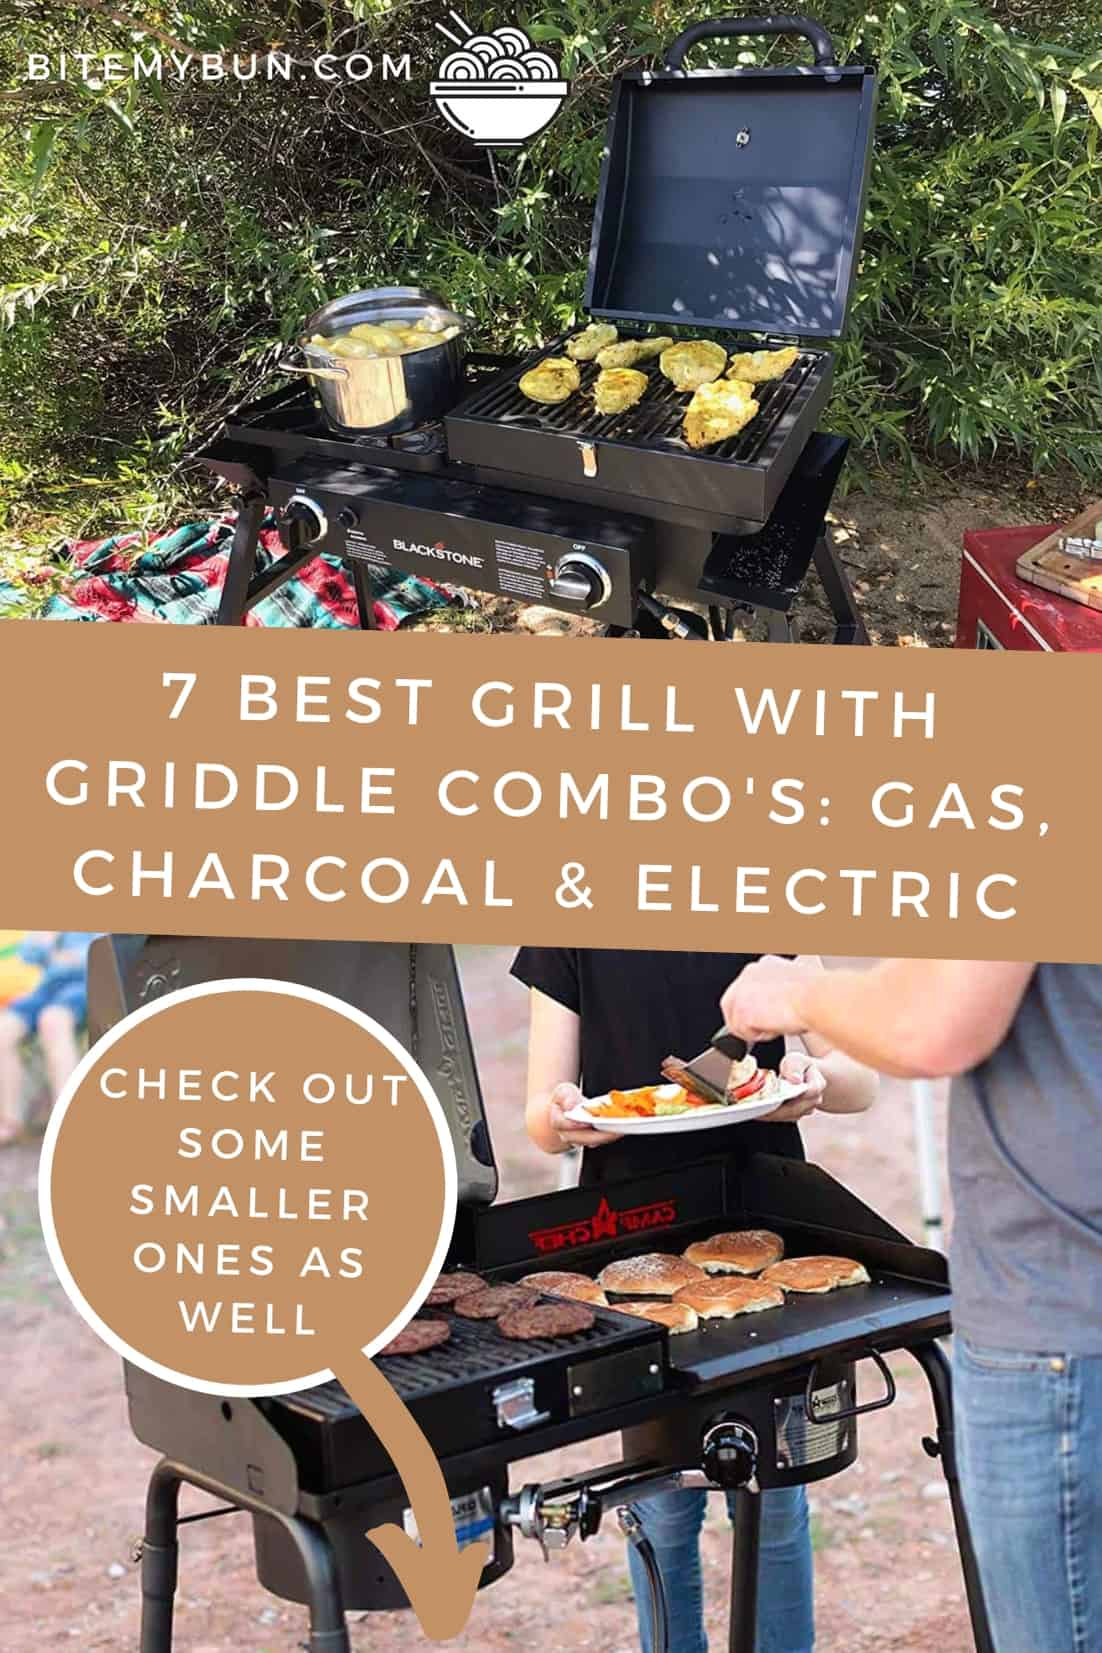 7 Best Grill with Griddle Combo's: Gas, charcoal & electric